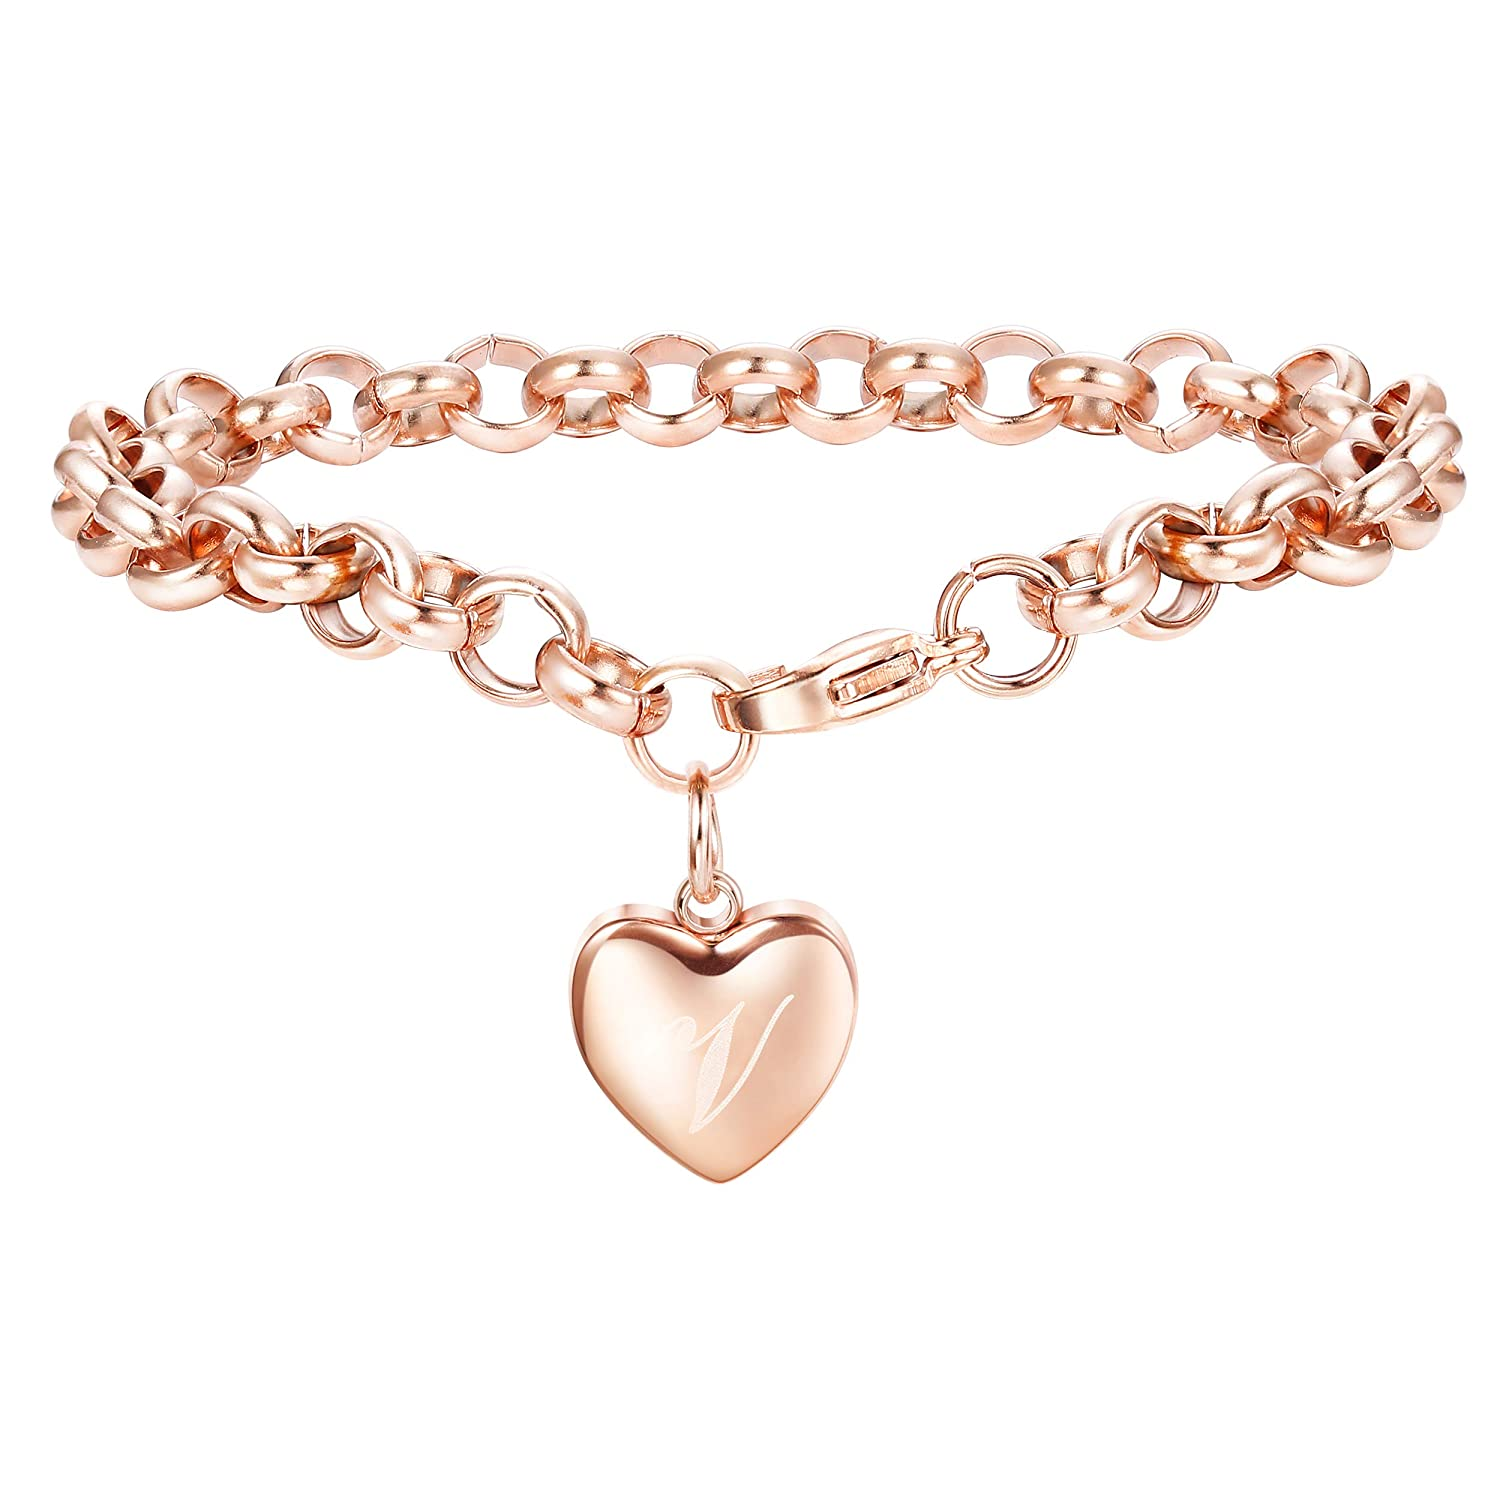 Adramata Rose Gold Personalized Initial Bracelets for Women Girls Customized Heart Cute Ankle Bracelets Adjustable A-Z B07FSDKYMK_US